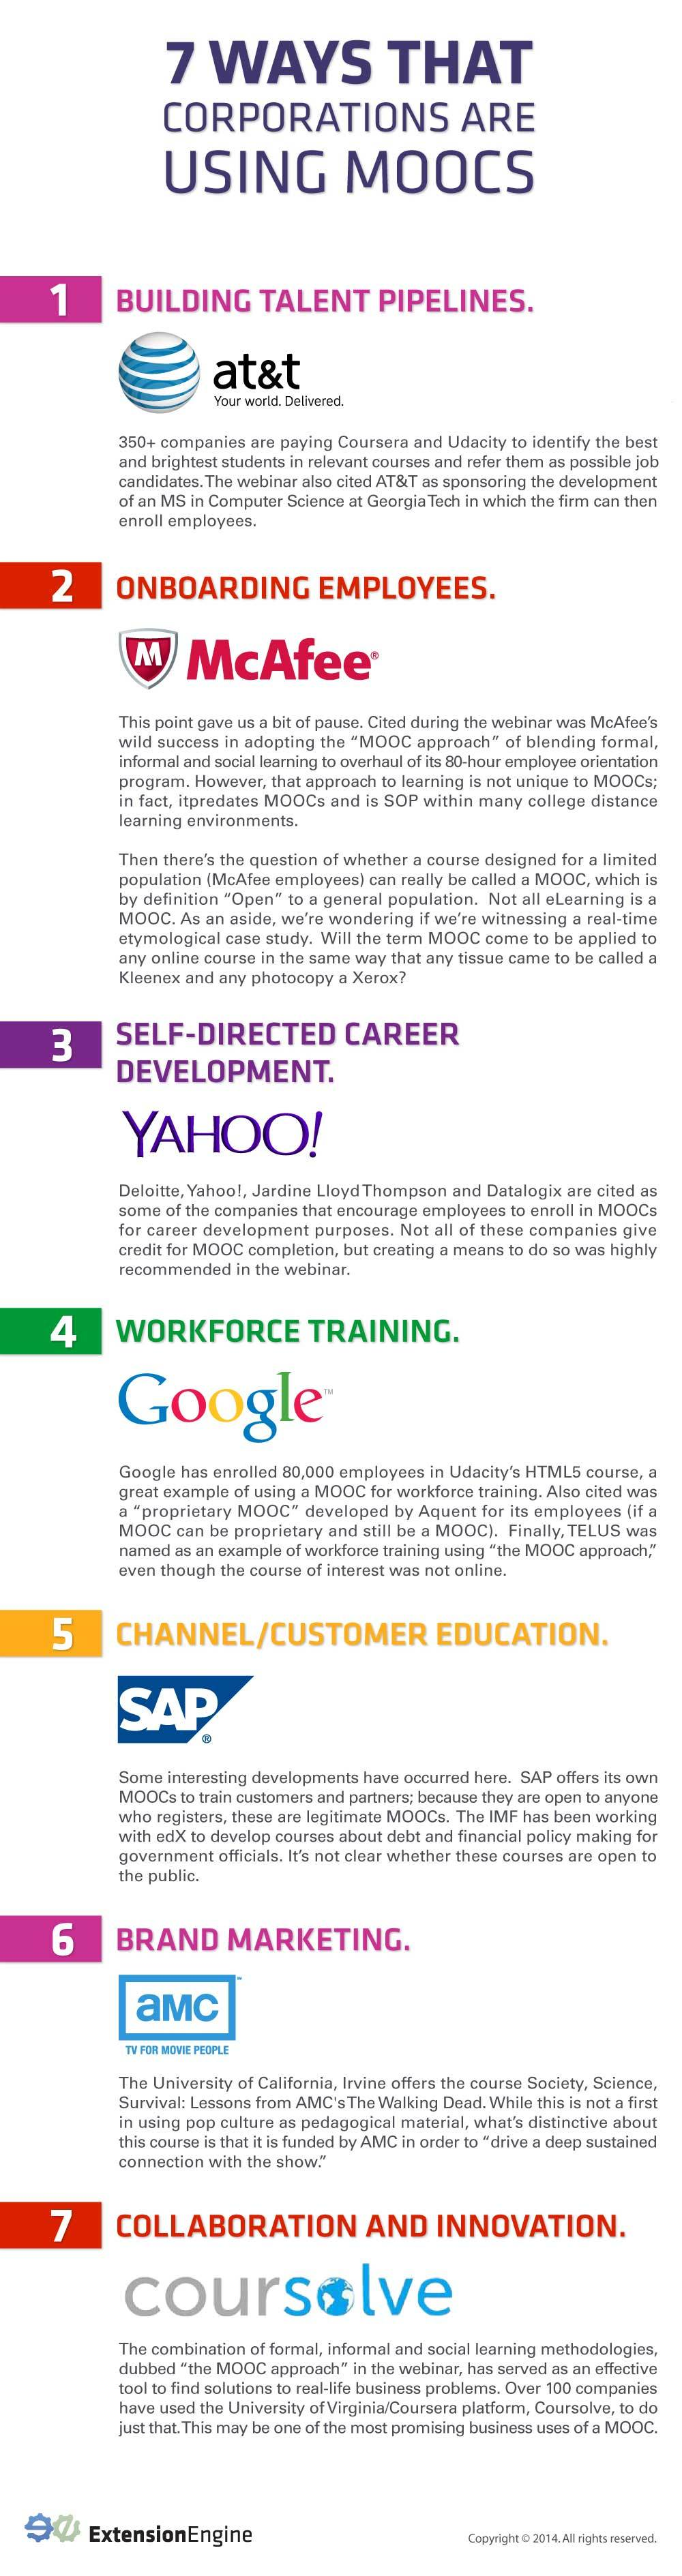 How Corporations Use MOOCs Infographic